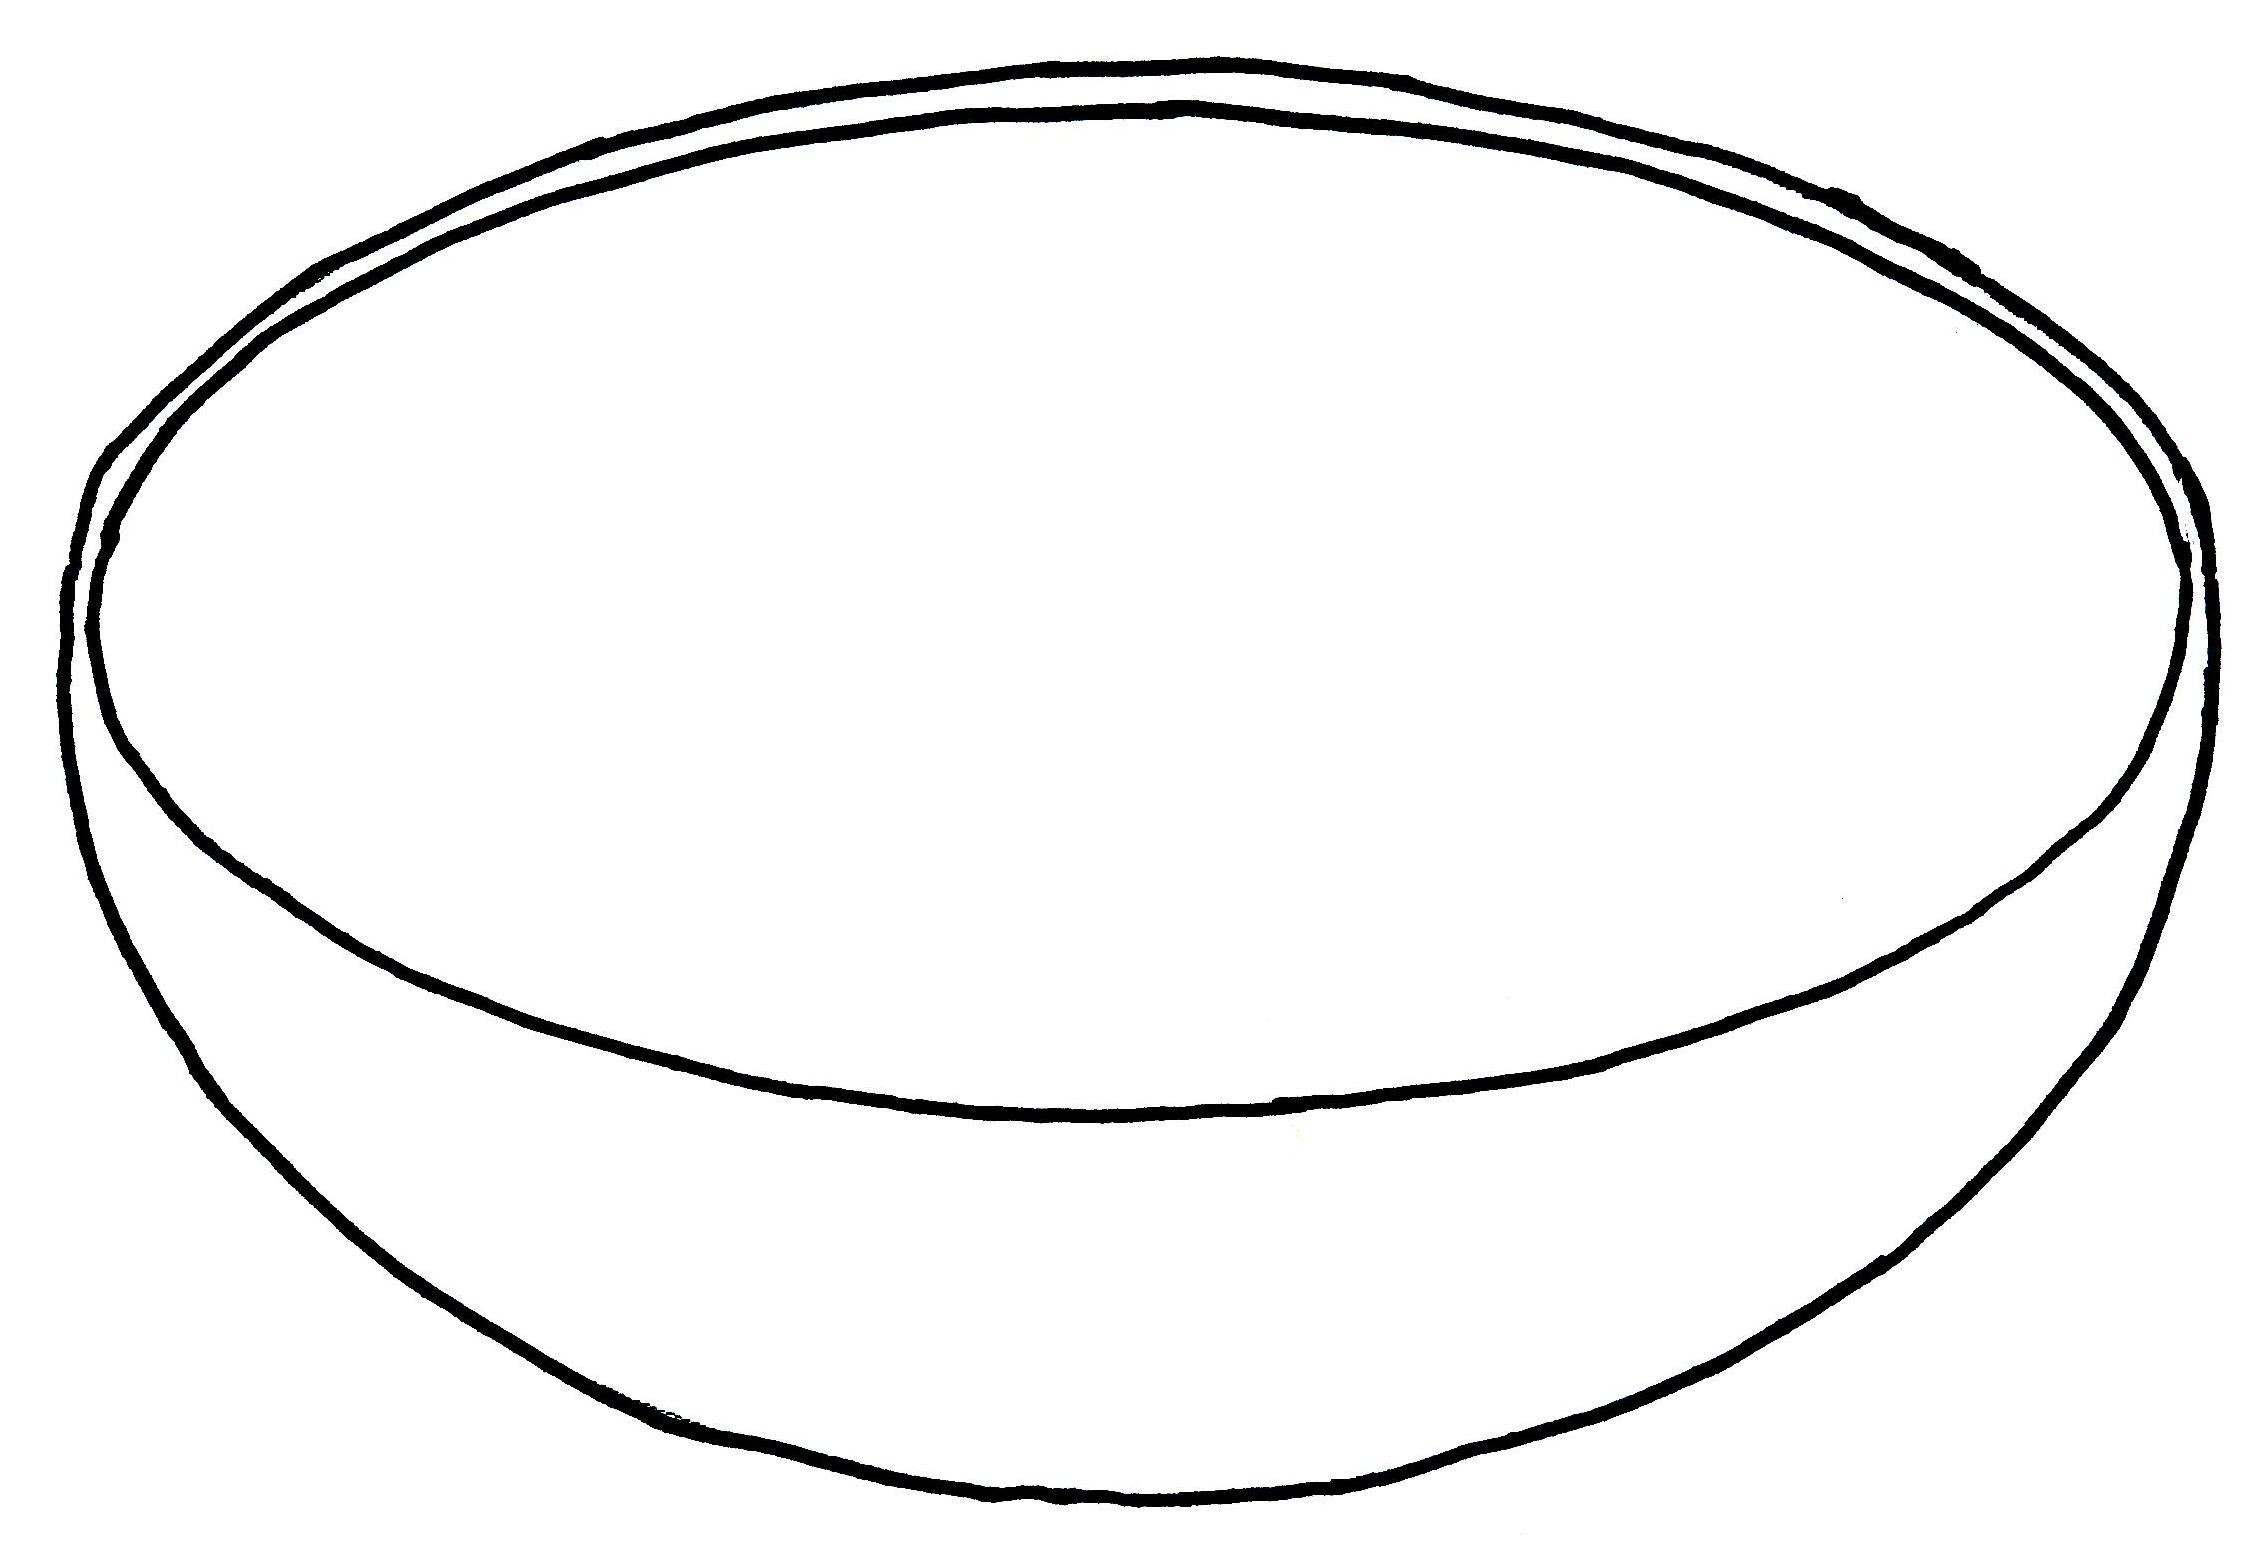 Bowl clipart black and white 2 » Clipart Portal.